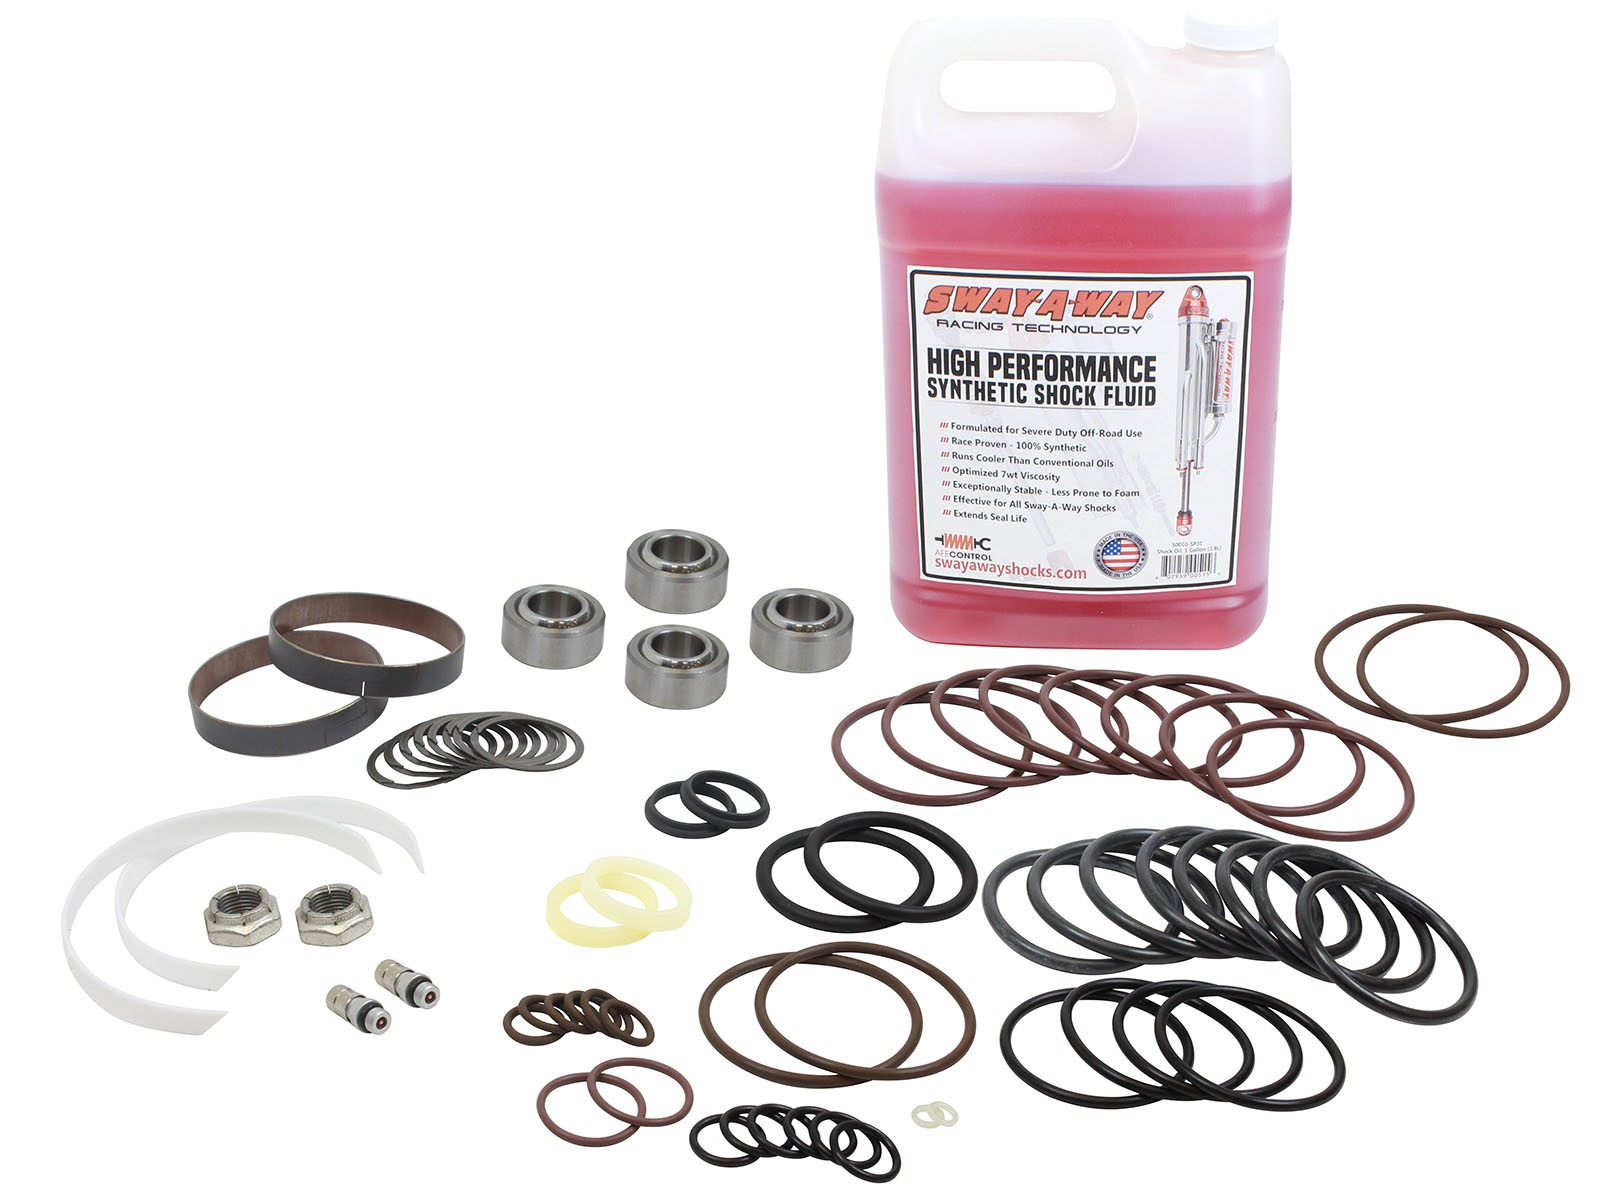 Afe Control Sway A Way 30 Master Rebuild Kit 1 Shaft Gen 2 02 Duramax Fuel Filter Housing Power